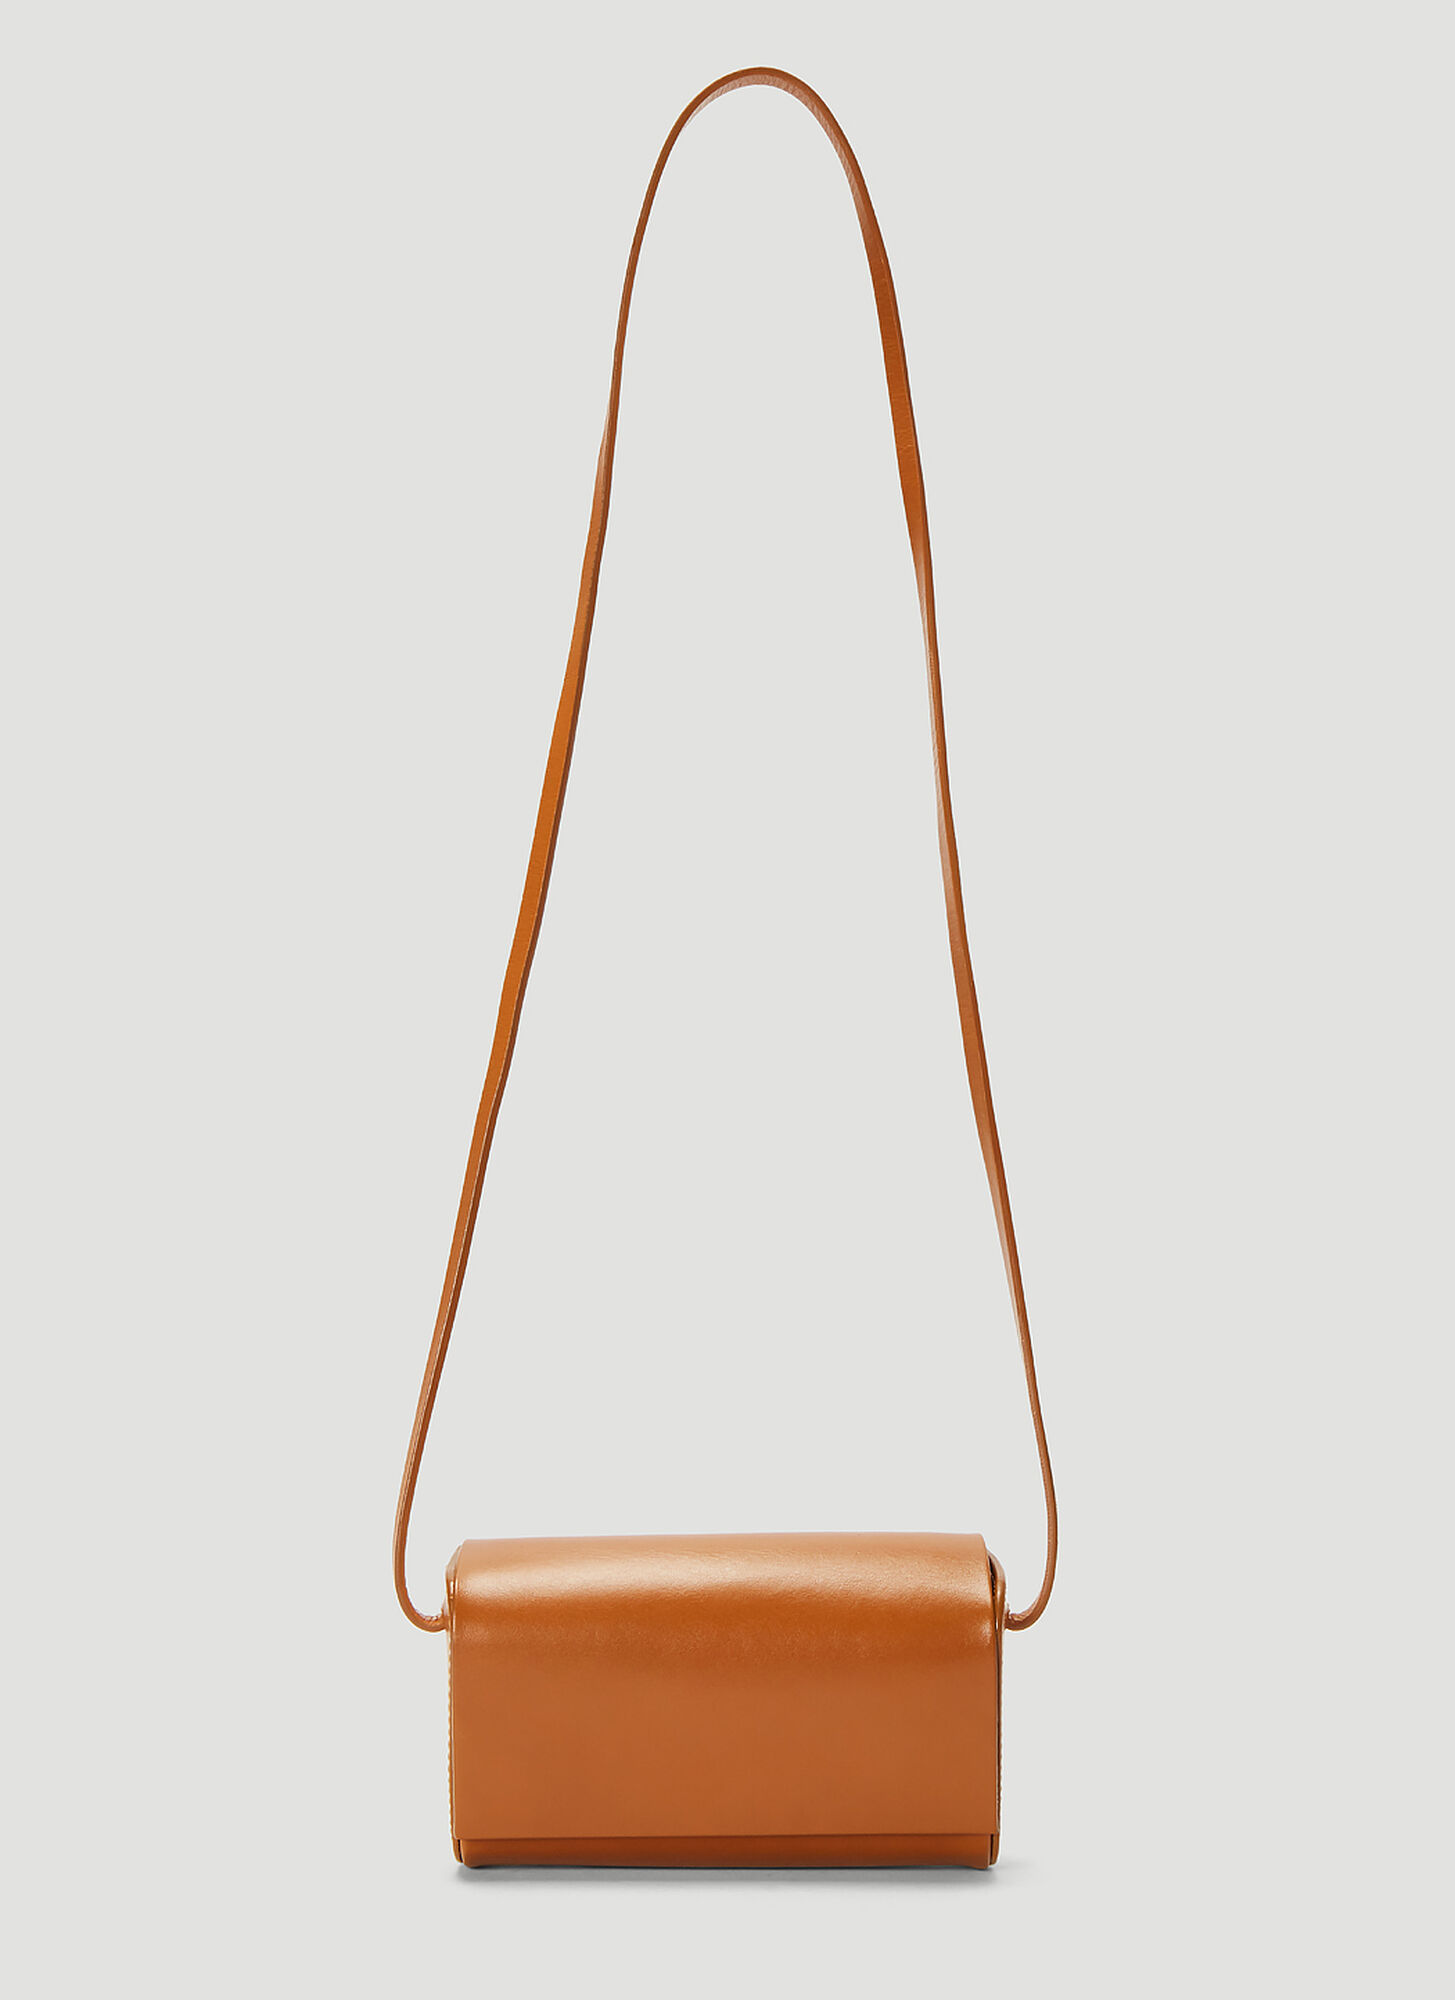 Building Block Petite Bag in Brown